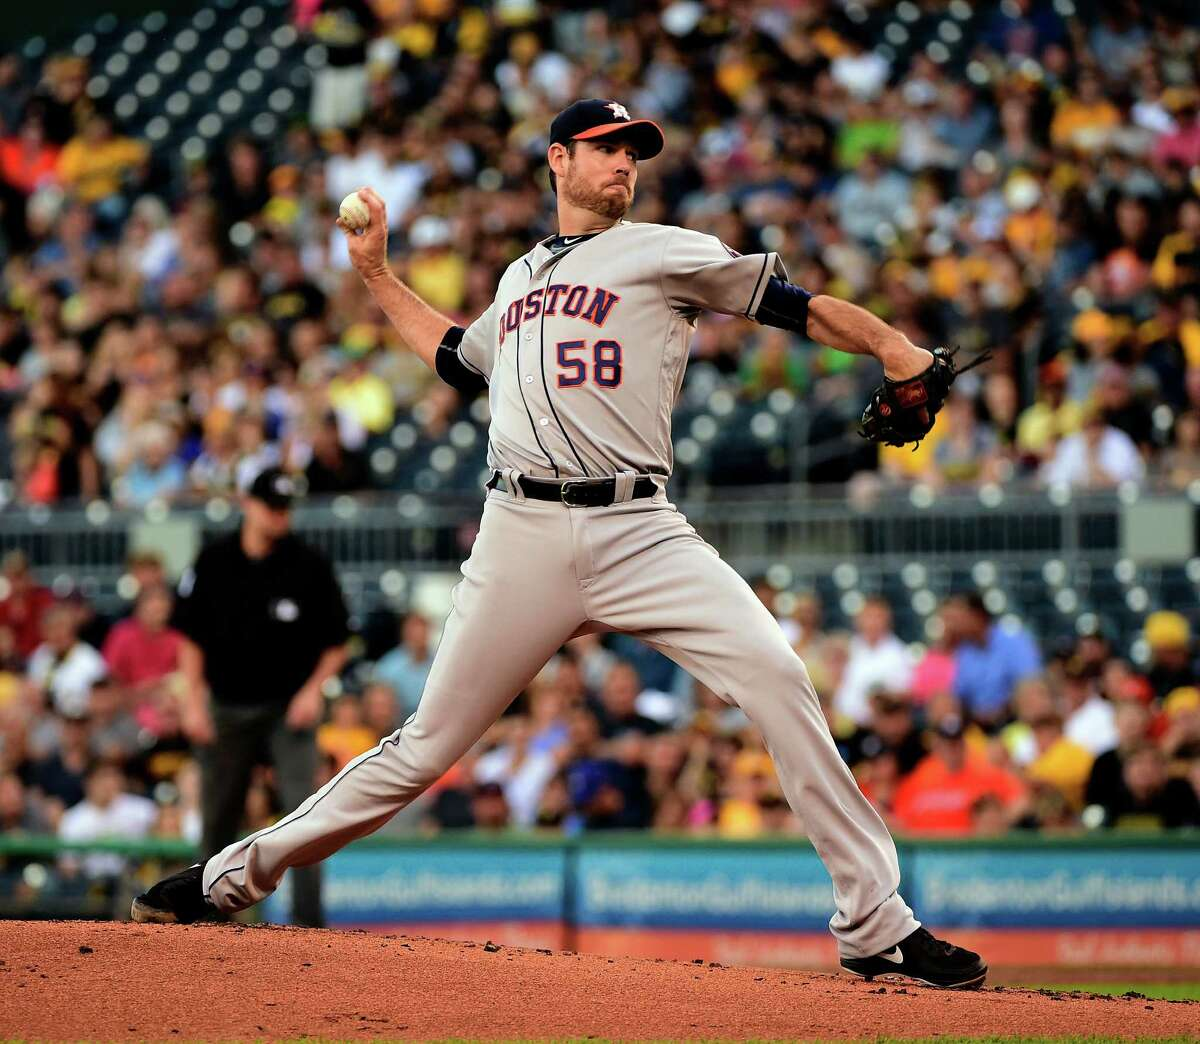 Houston Astros' Doug Fister pitches in the first inning of a baseball game against the Pittsburgh Pirates in Pittsburgh, Monday, Aug. 22, 2016. (AP Photo/Fred Vuich)